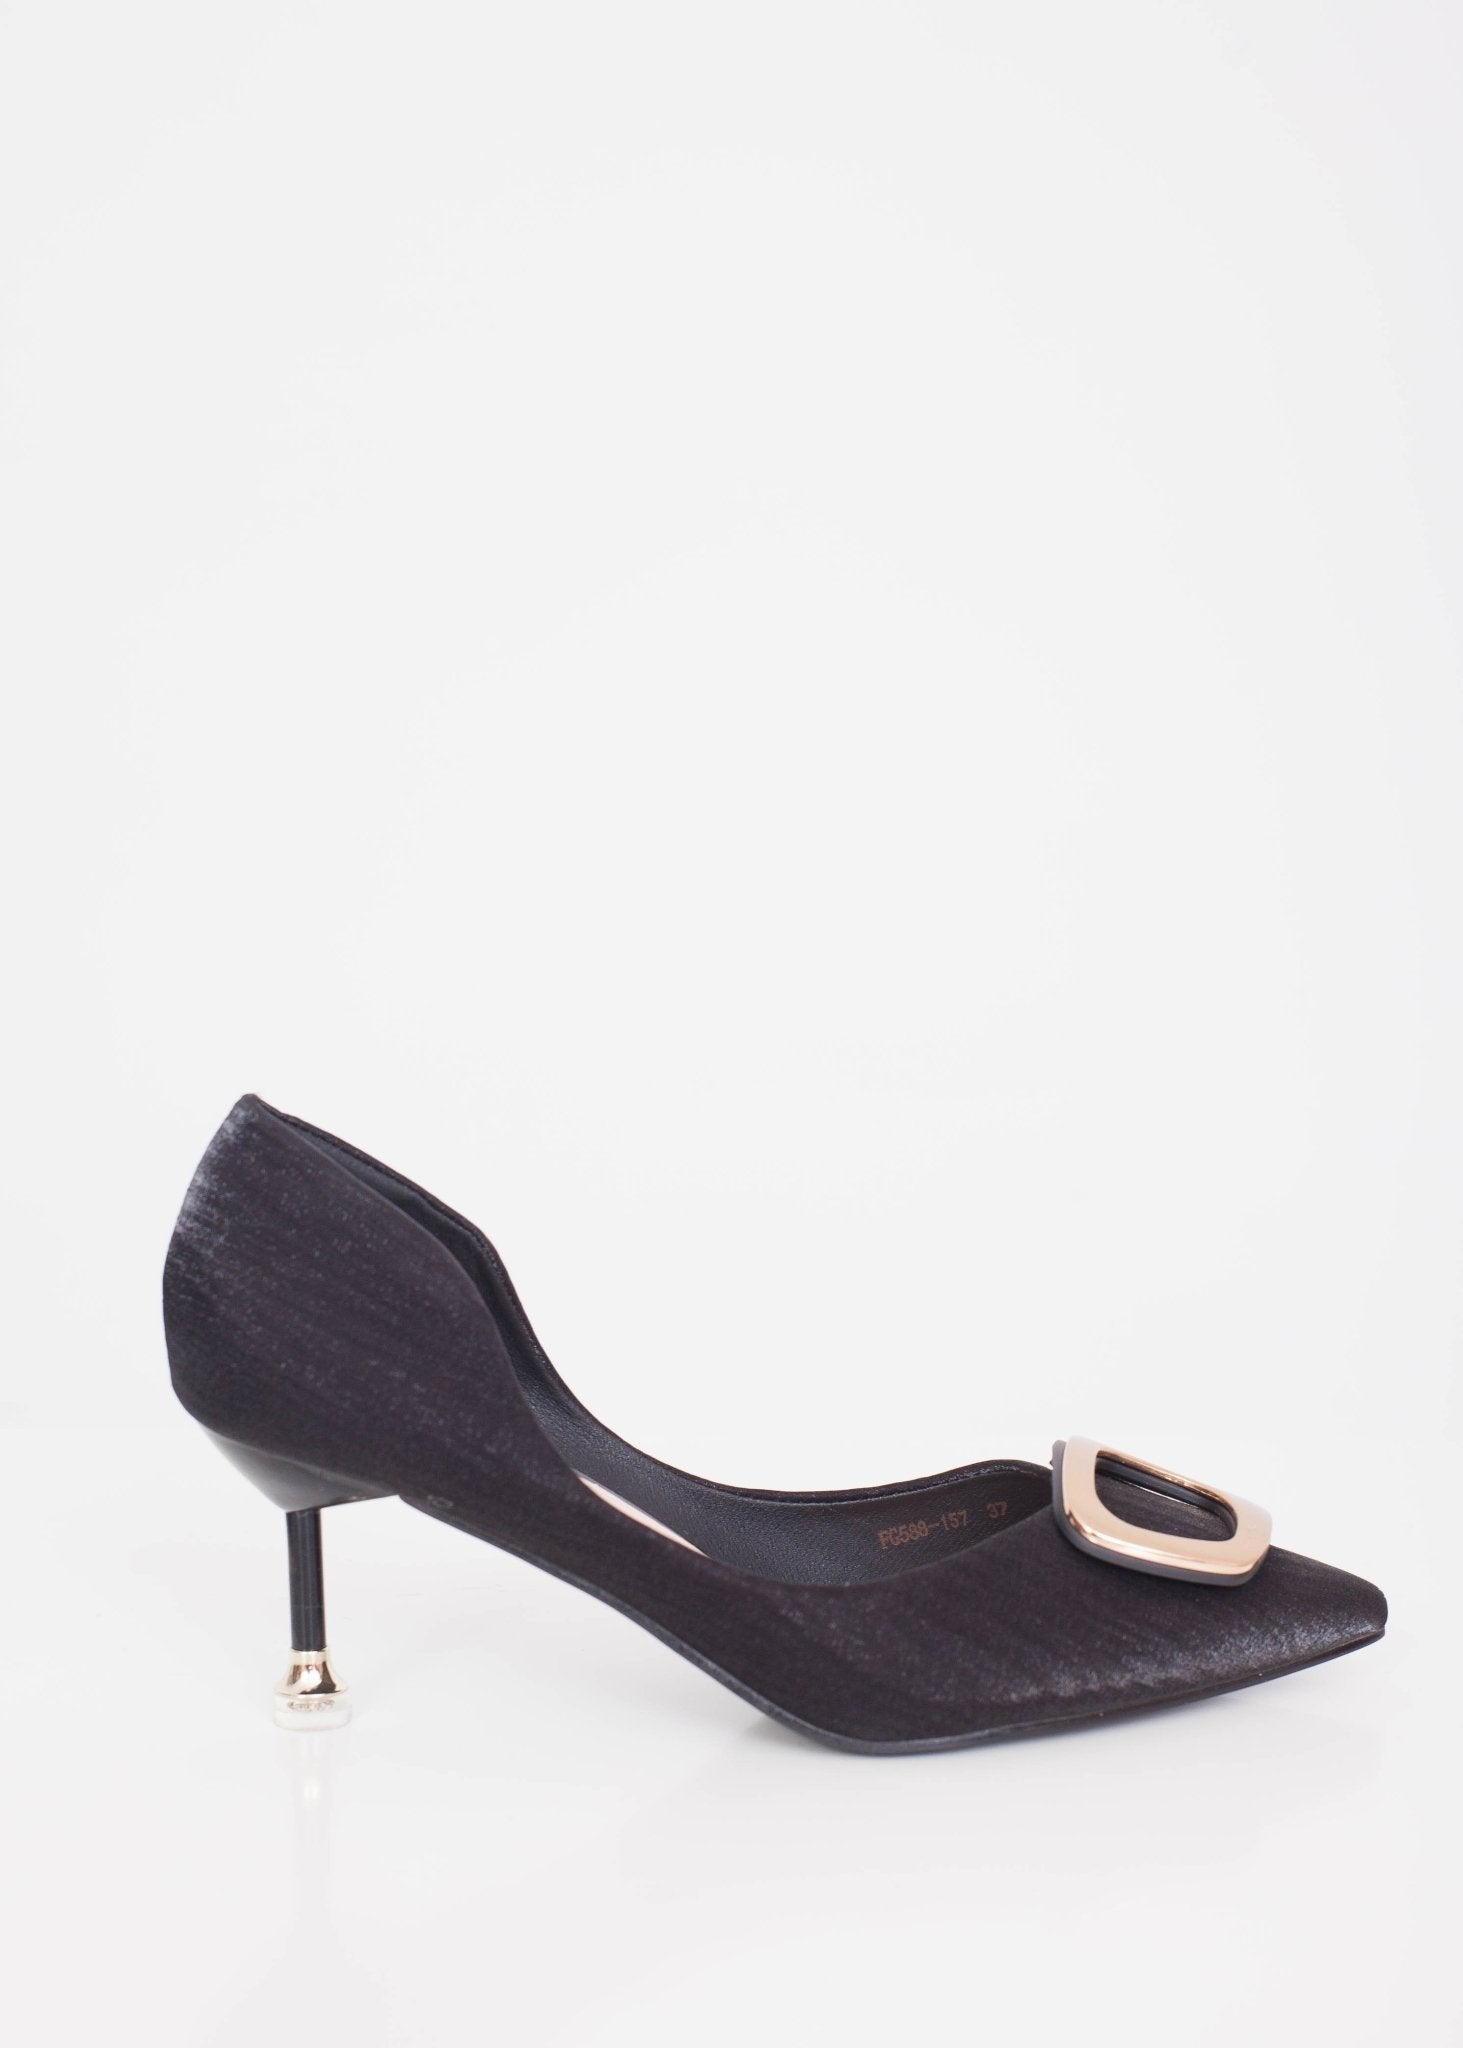 Emilia Black Buckle Heels - The Walk in Wardrobe